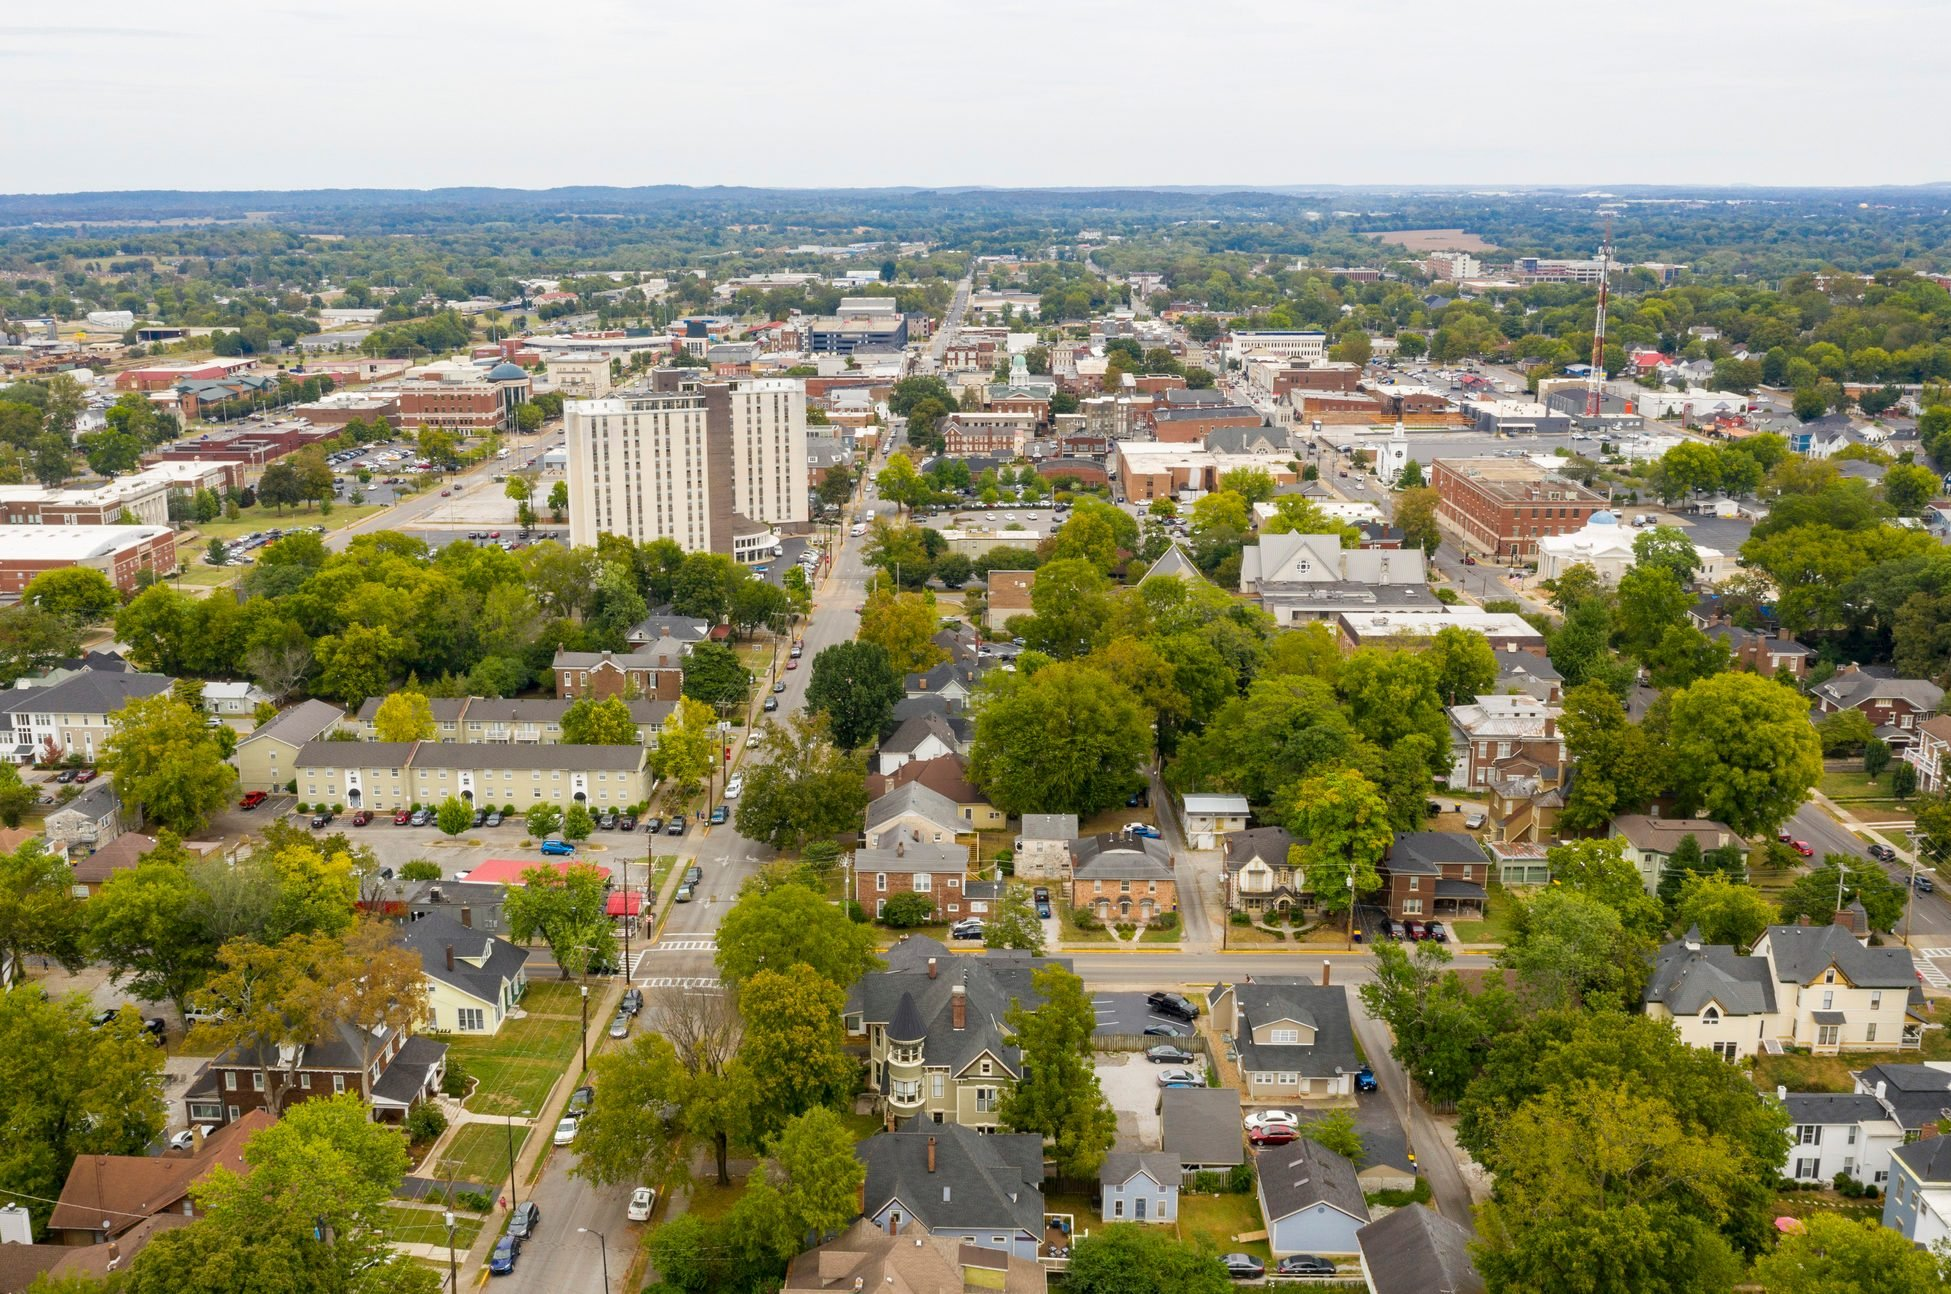 Overcast Day Aerial View over the Urban Downtown Area of Bowling Green Kentucky